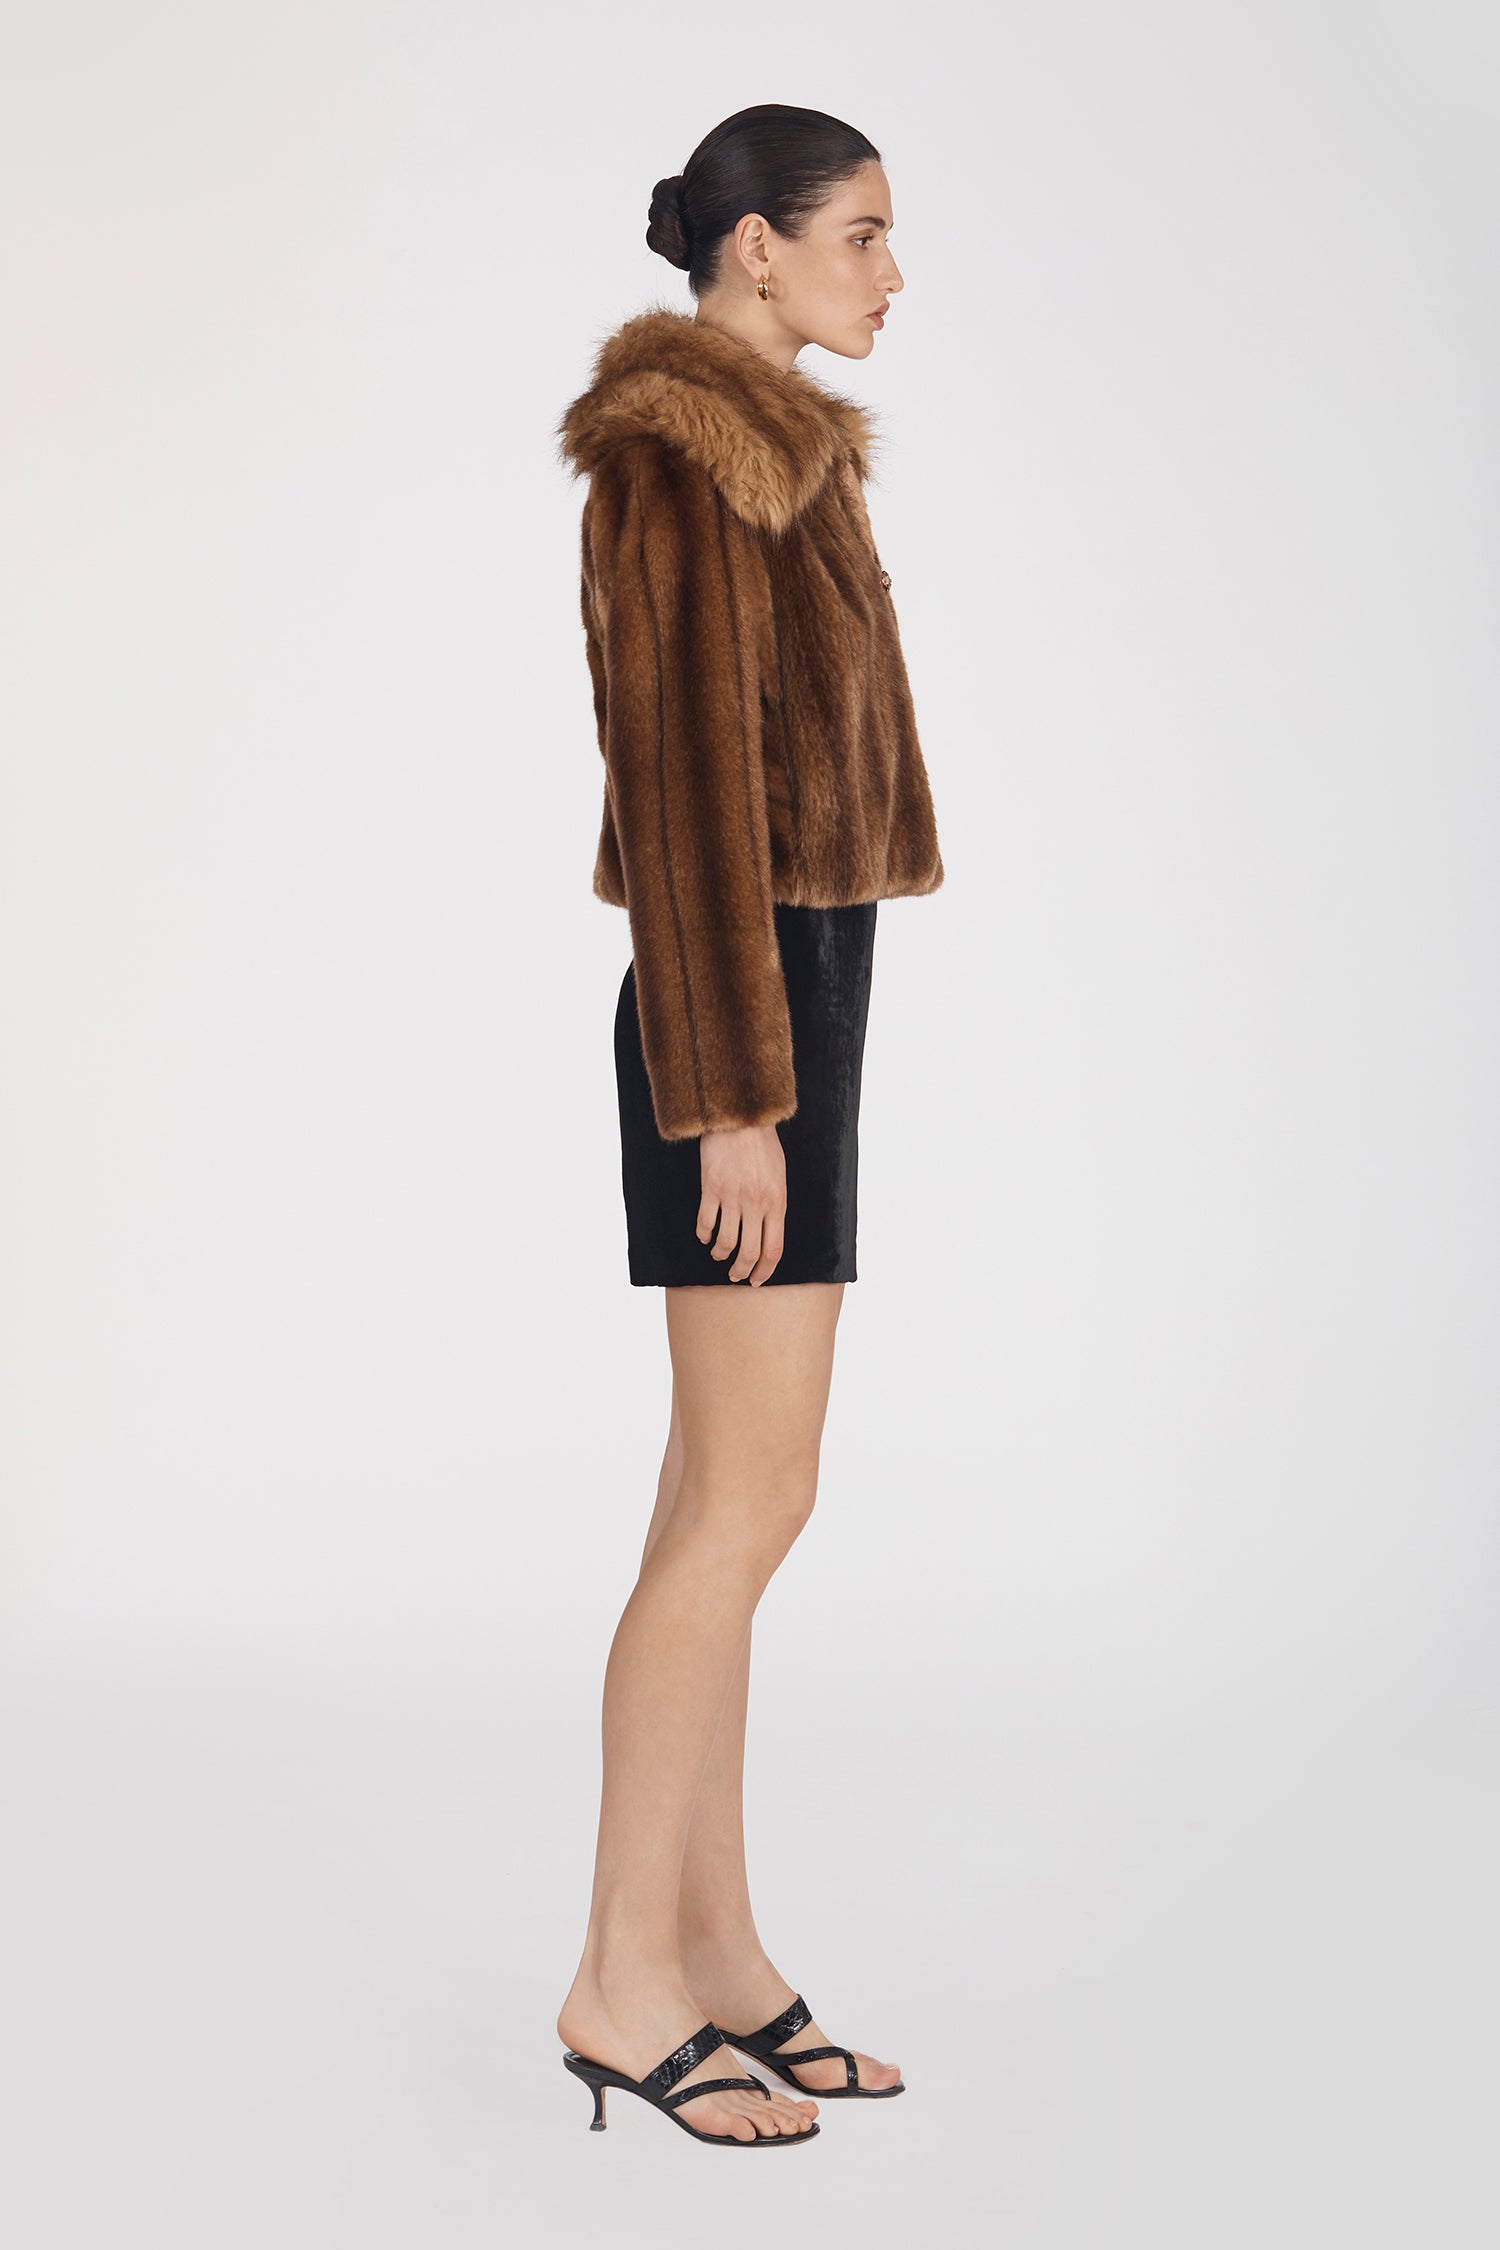 Marei1998's Oleander Faux Fur Short Jacket In Classic Brown Color. Featuring Wide Collar And Unique Front Buttons Made By An Italian Jewel Artisan. As Worn By The Model. Front View. Resort 2020 Collection - Furless Friendship.